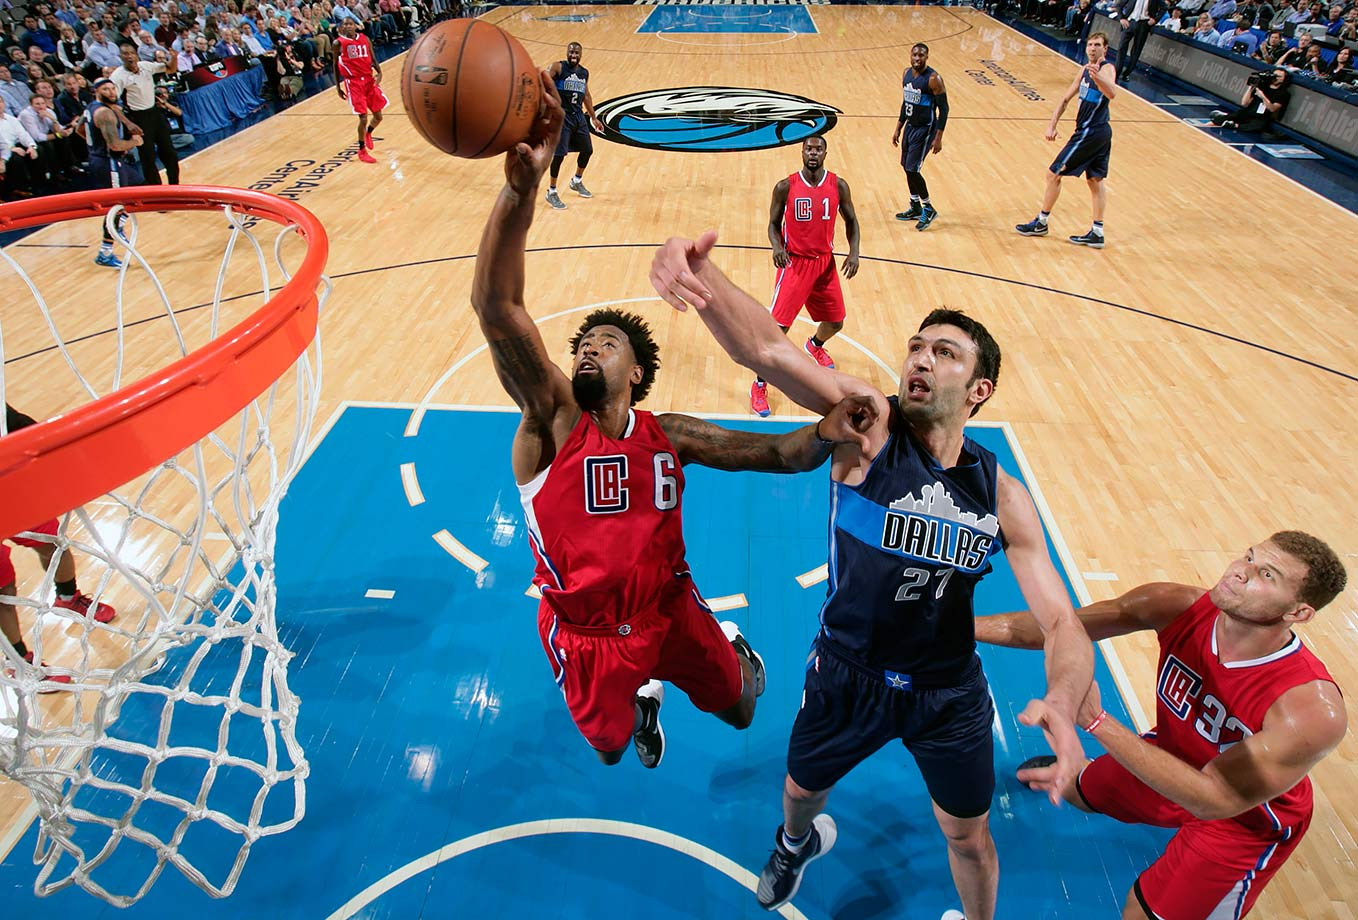 Congratulations to DeAndre Jordan for finding the best way to make sure everyone in the nation's fifth-largest media market hates your guts forever. Jordan verbally agreed to join the Mavericks before deciding he actually wanted to stay with the Clippers. Now the Mavs start Zaza Pachulia at center.